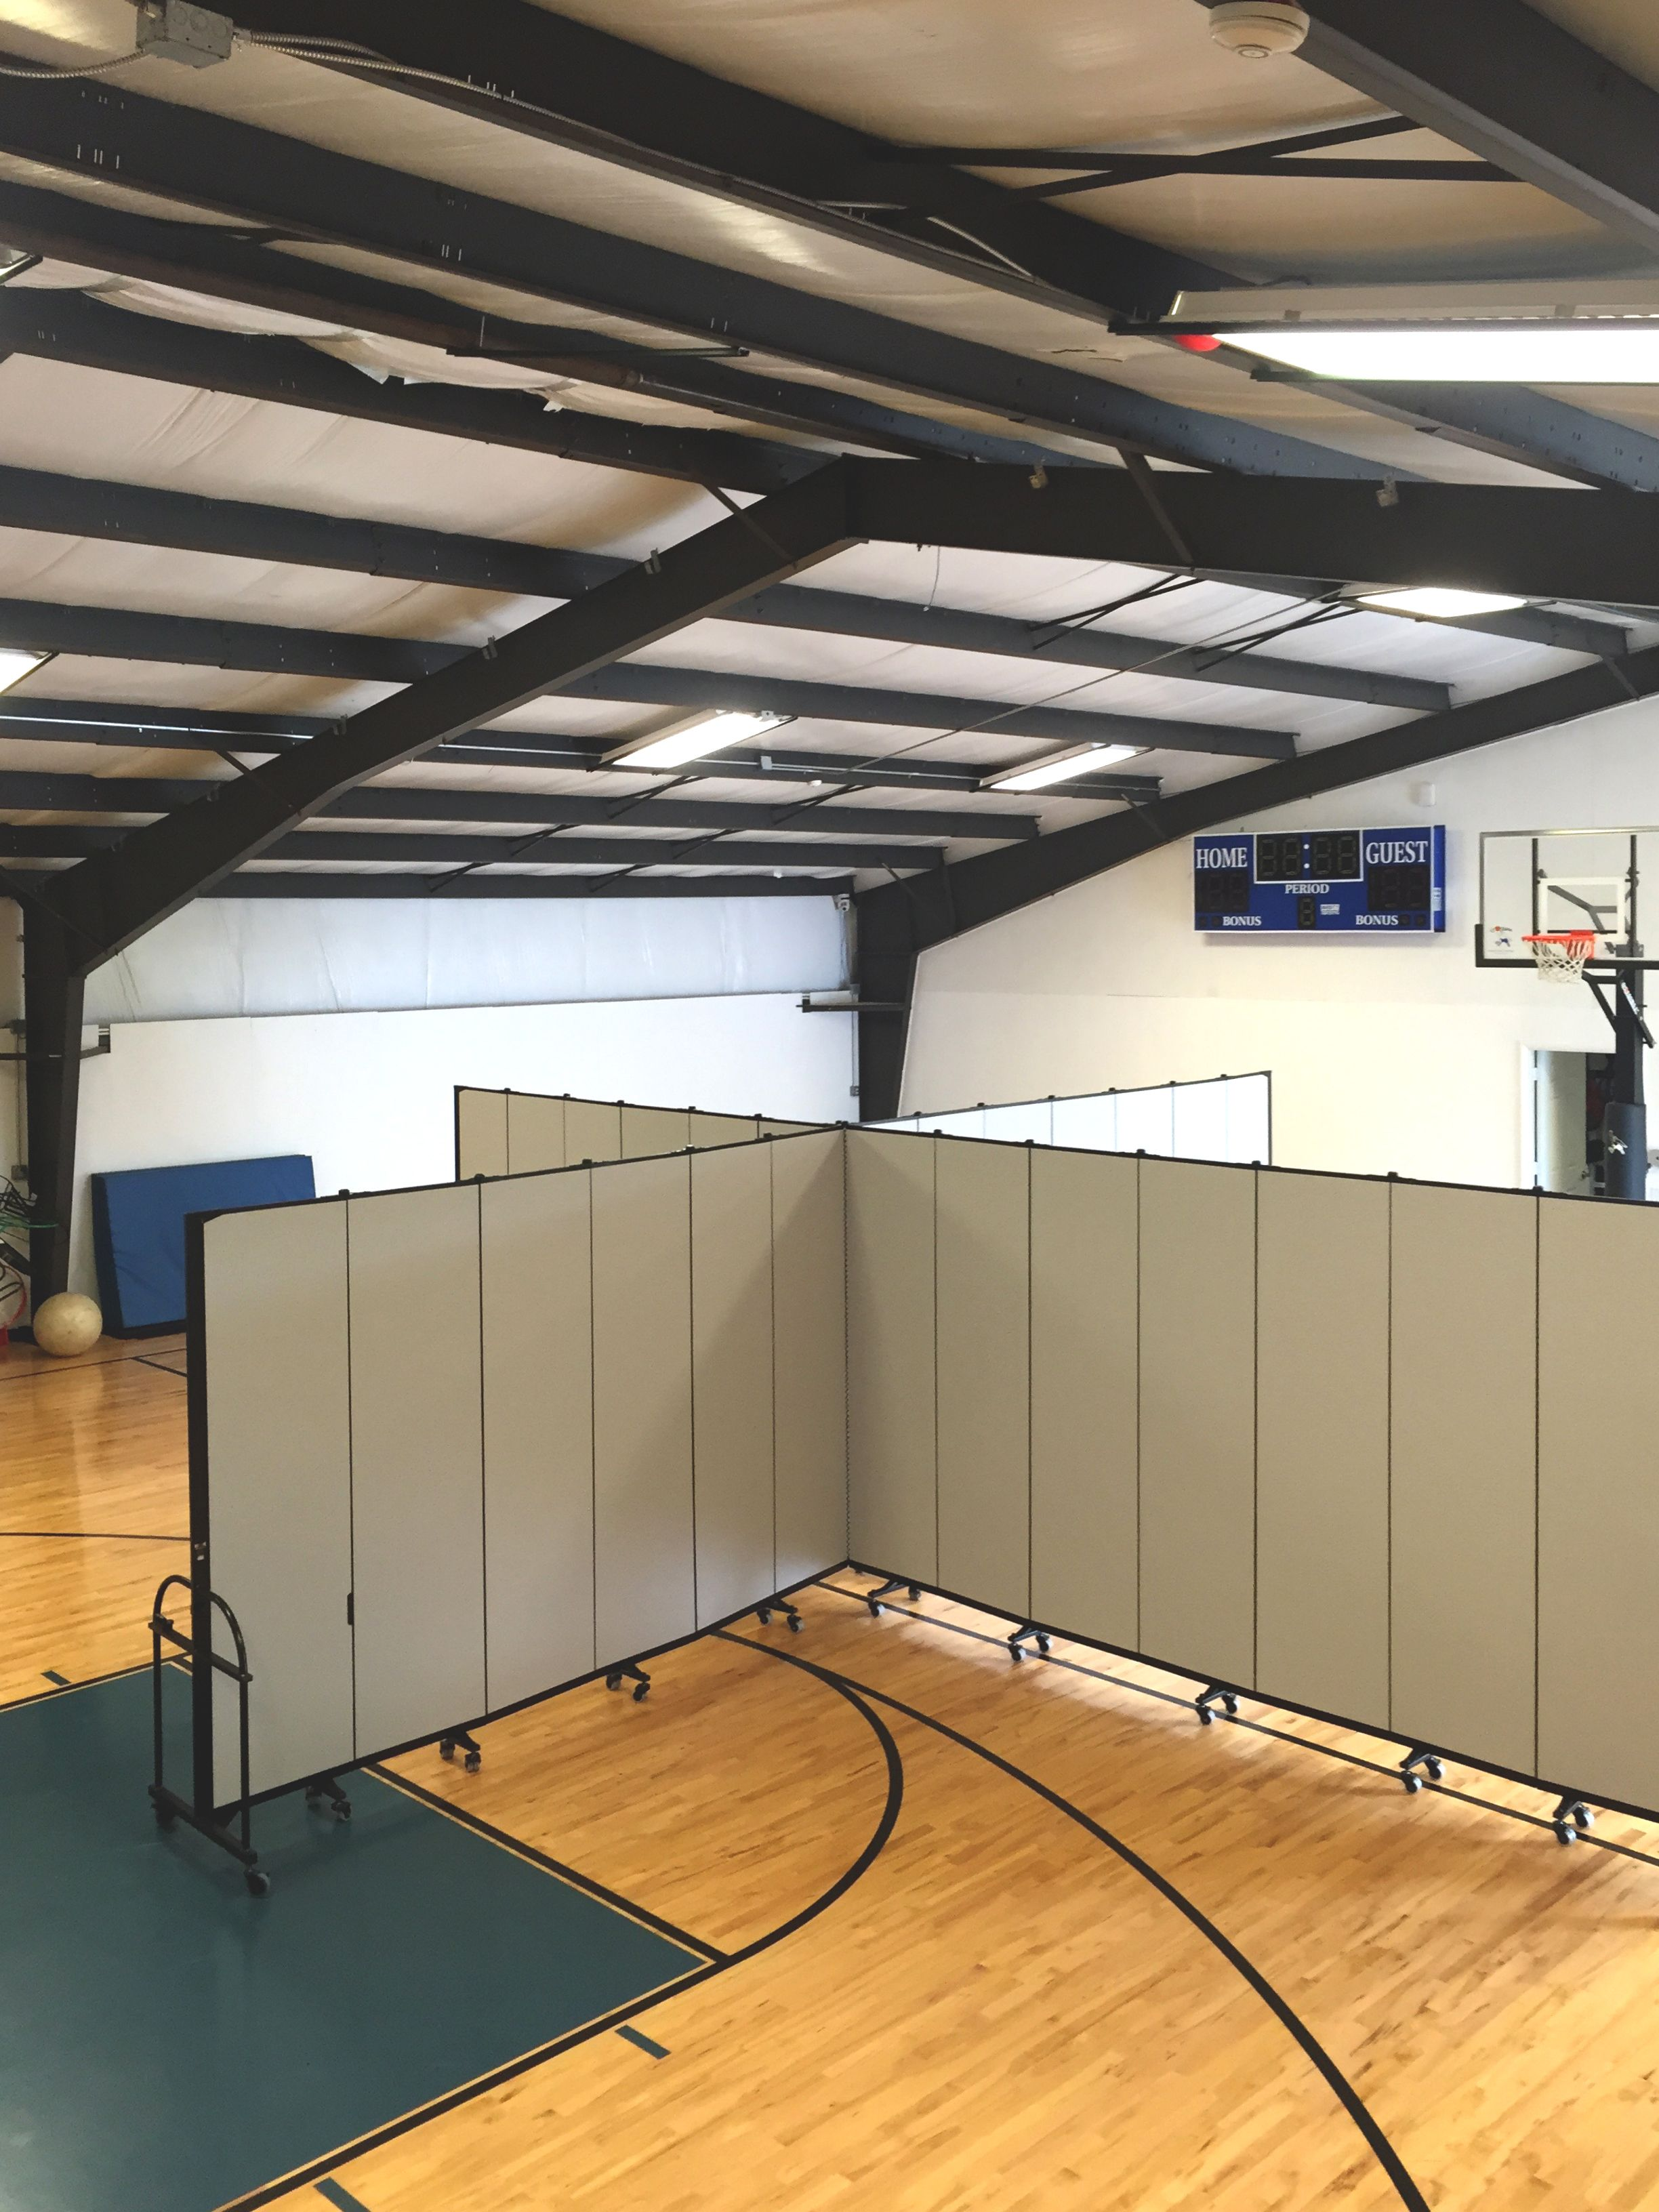 With only one gym available this school divided the space into